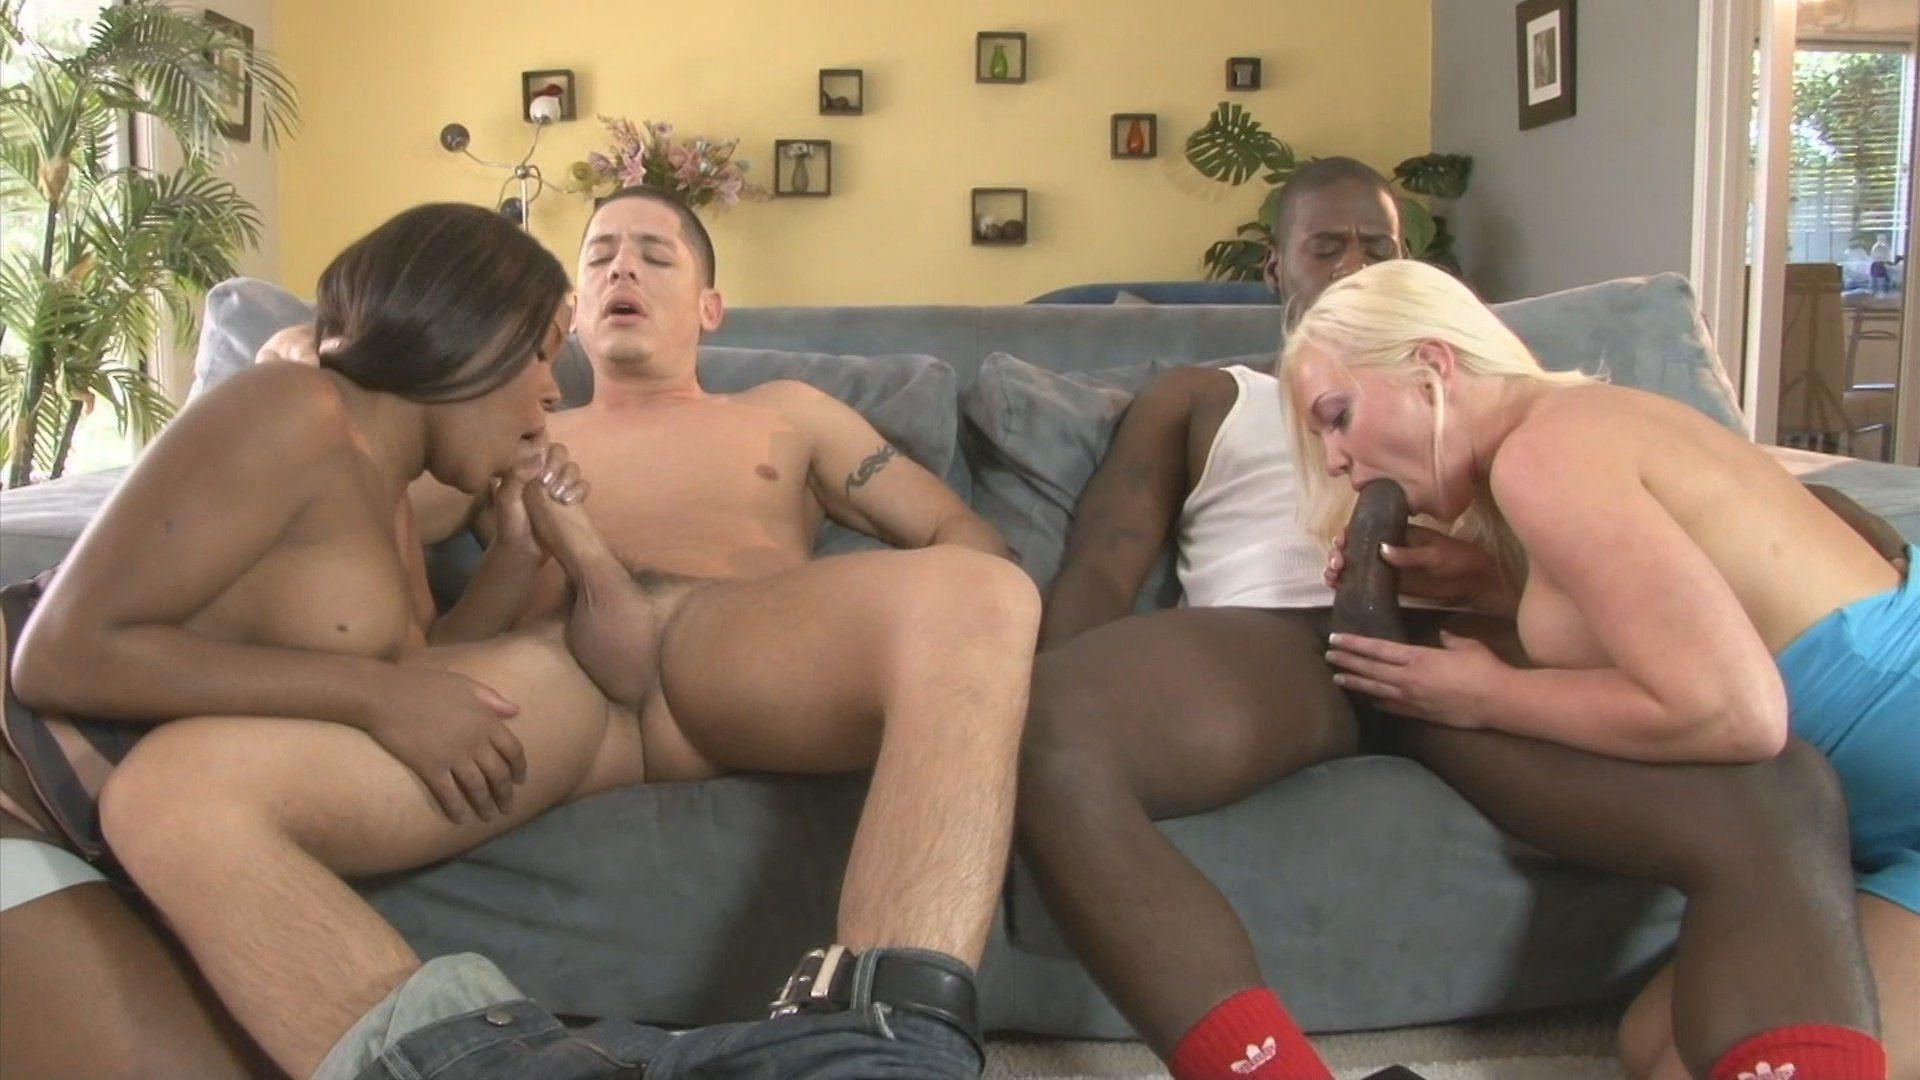 Interracial swingers tubes